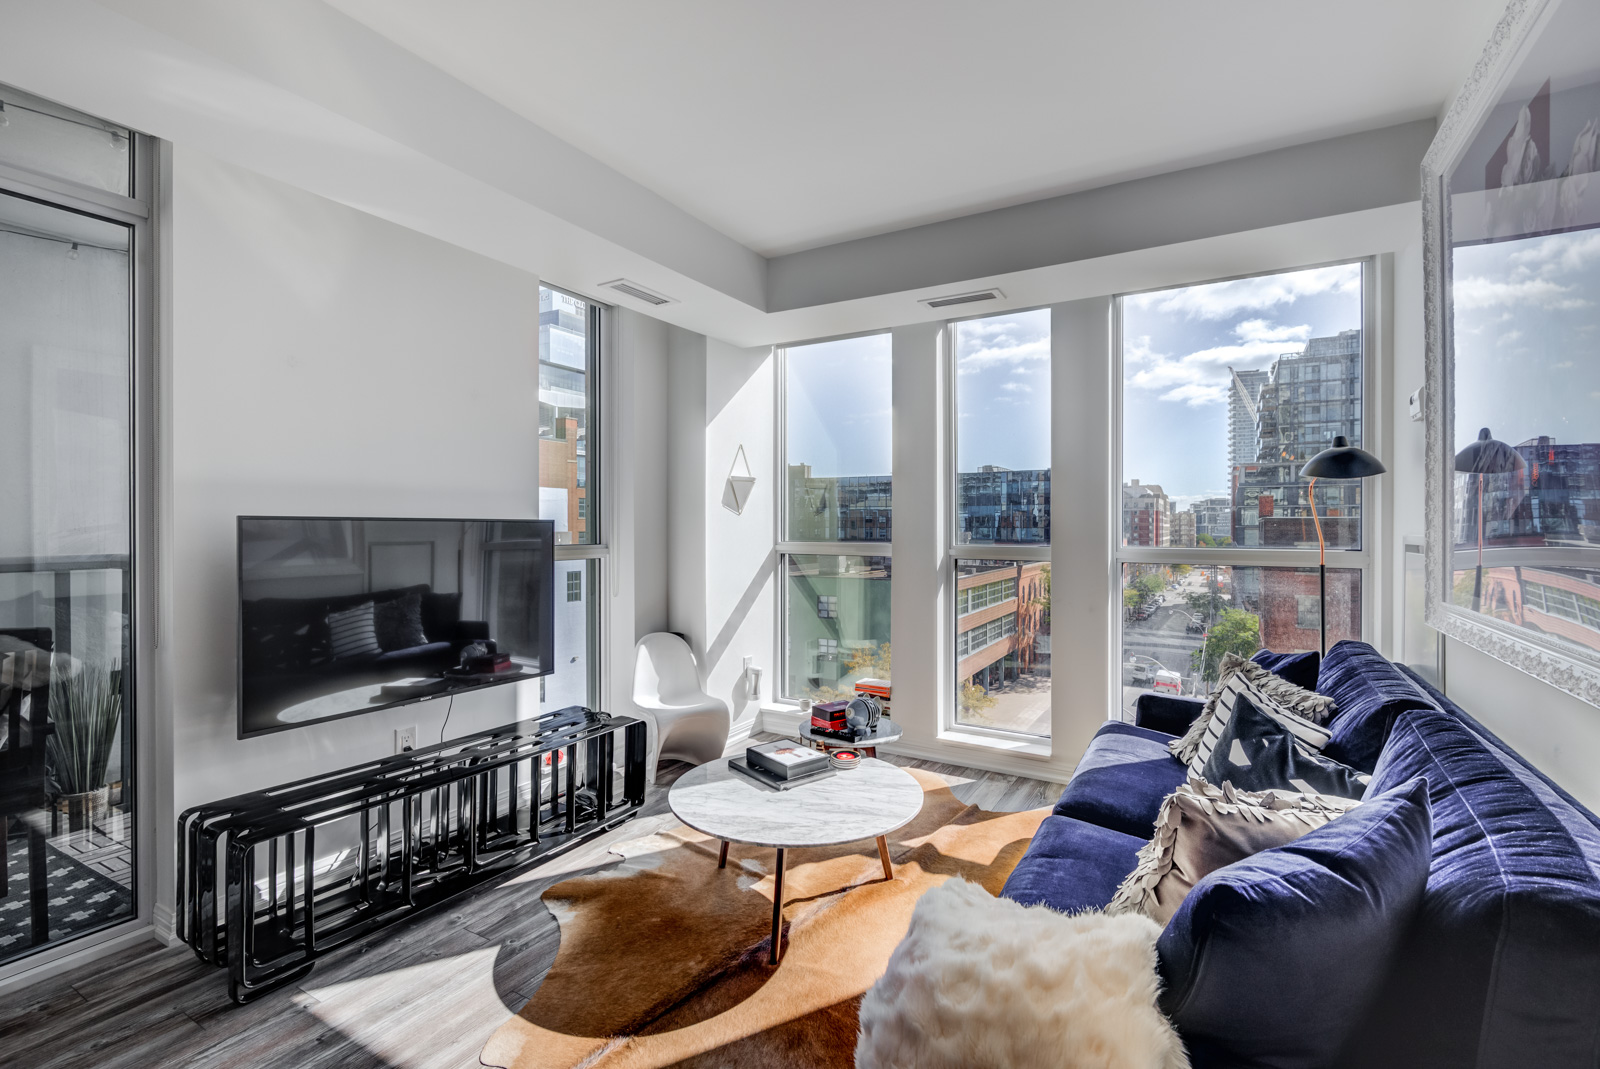 400 Adelaide St E Unit 704 Moss Park condos living room with modern furniture and wide windows.